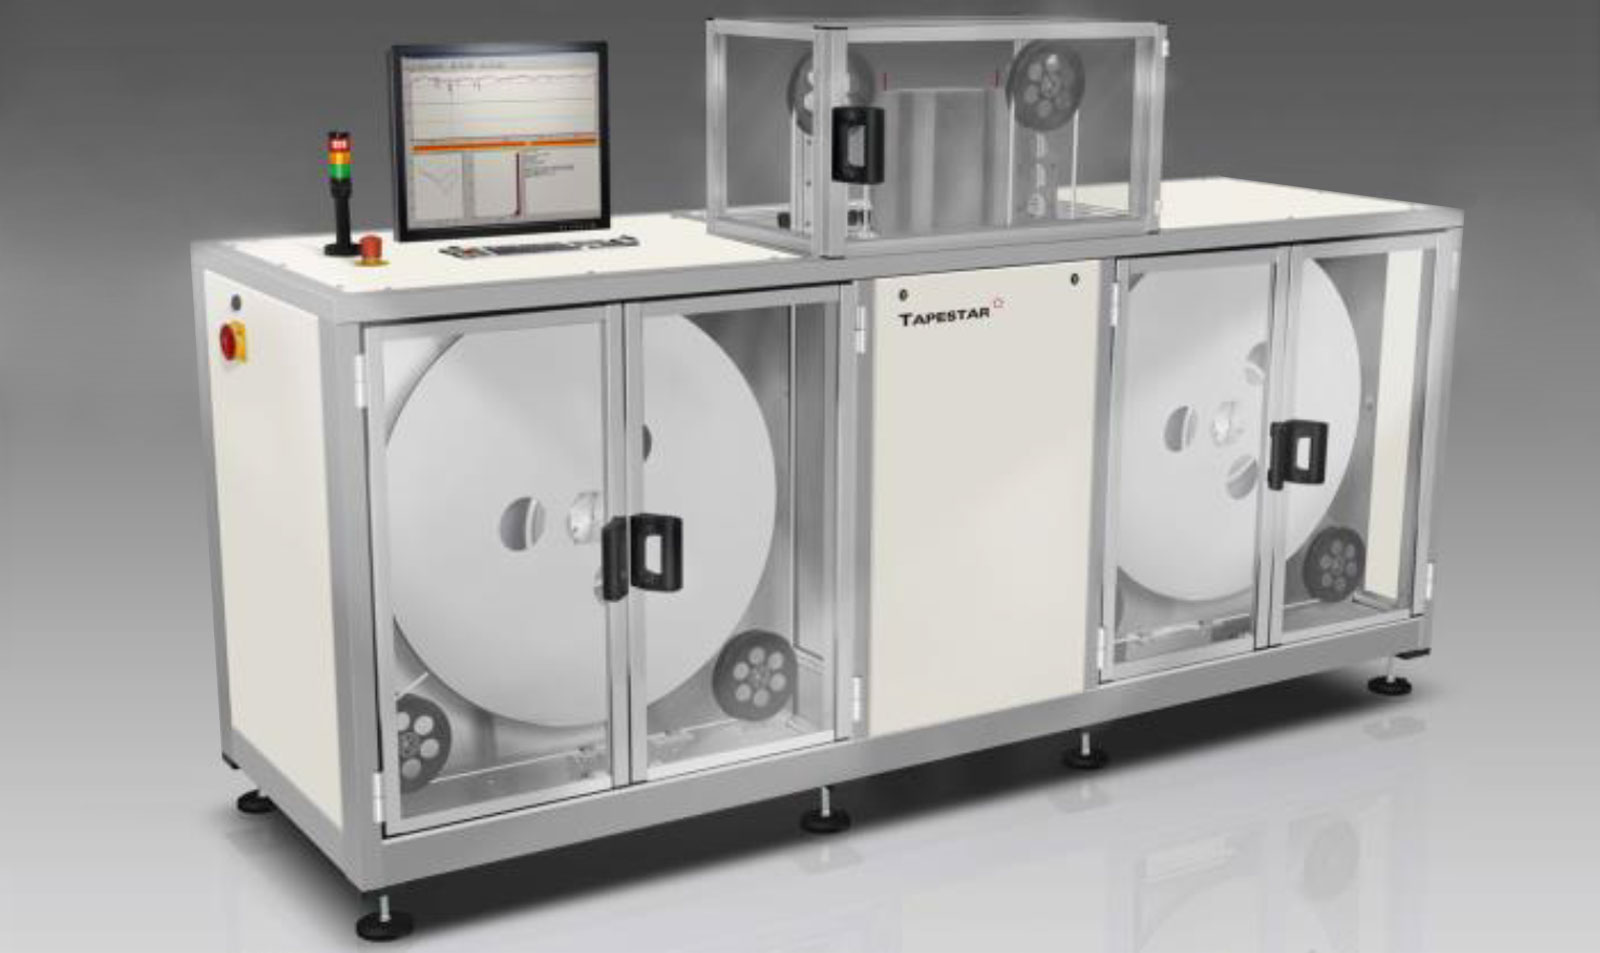 Our TAPESTAR XL ™ is a tool for quality control of superconducting wire and detects local defects as well as inhomogeneities.